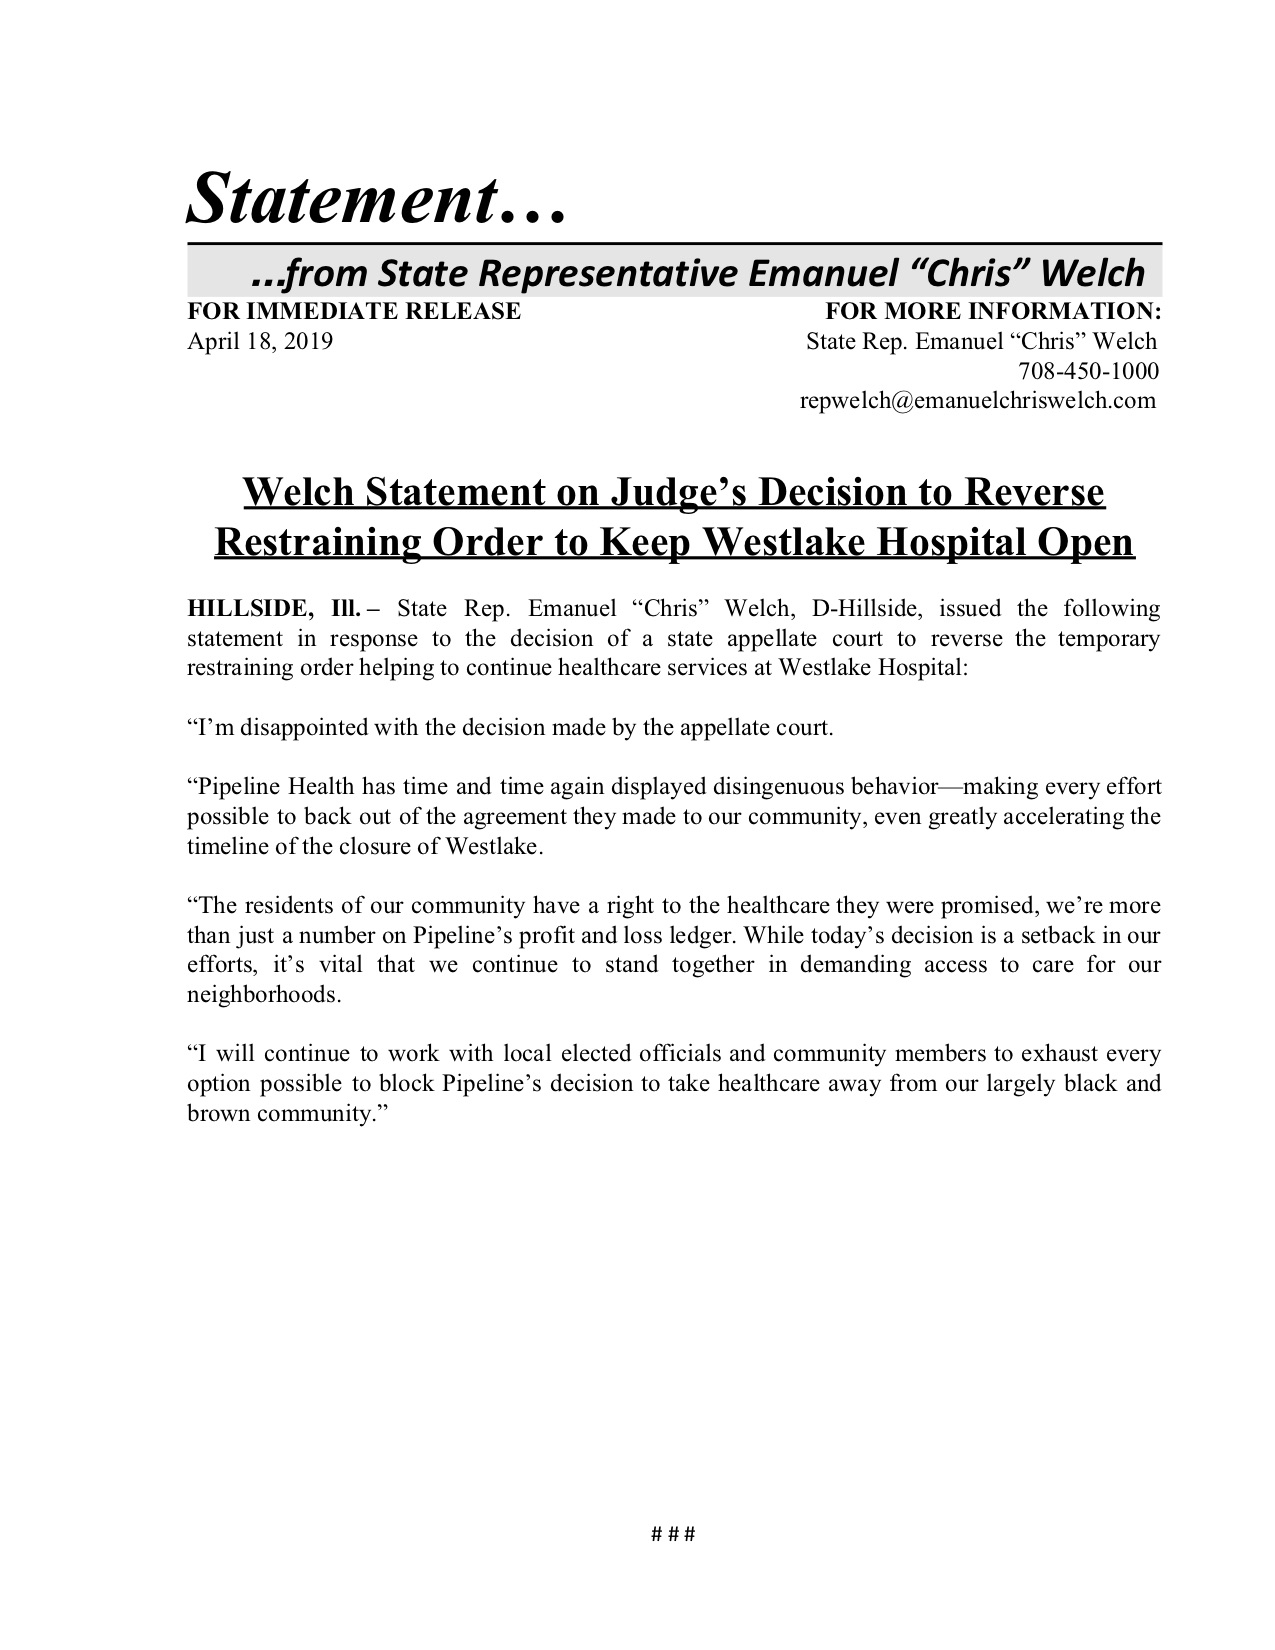 Welch Statement on Judge's Decision to Reverse Restraining Order to Keep Westlake Hospital Open  (April 18, 2019)